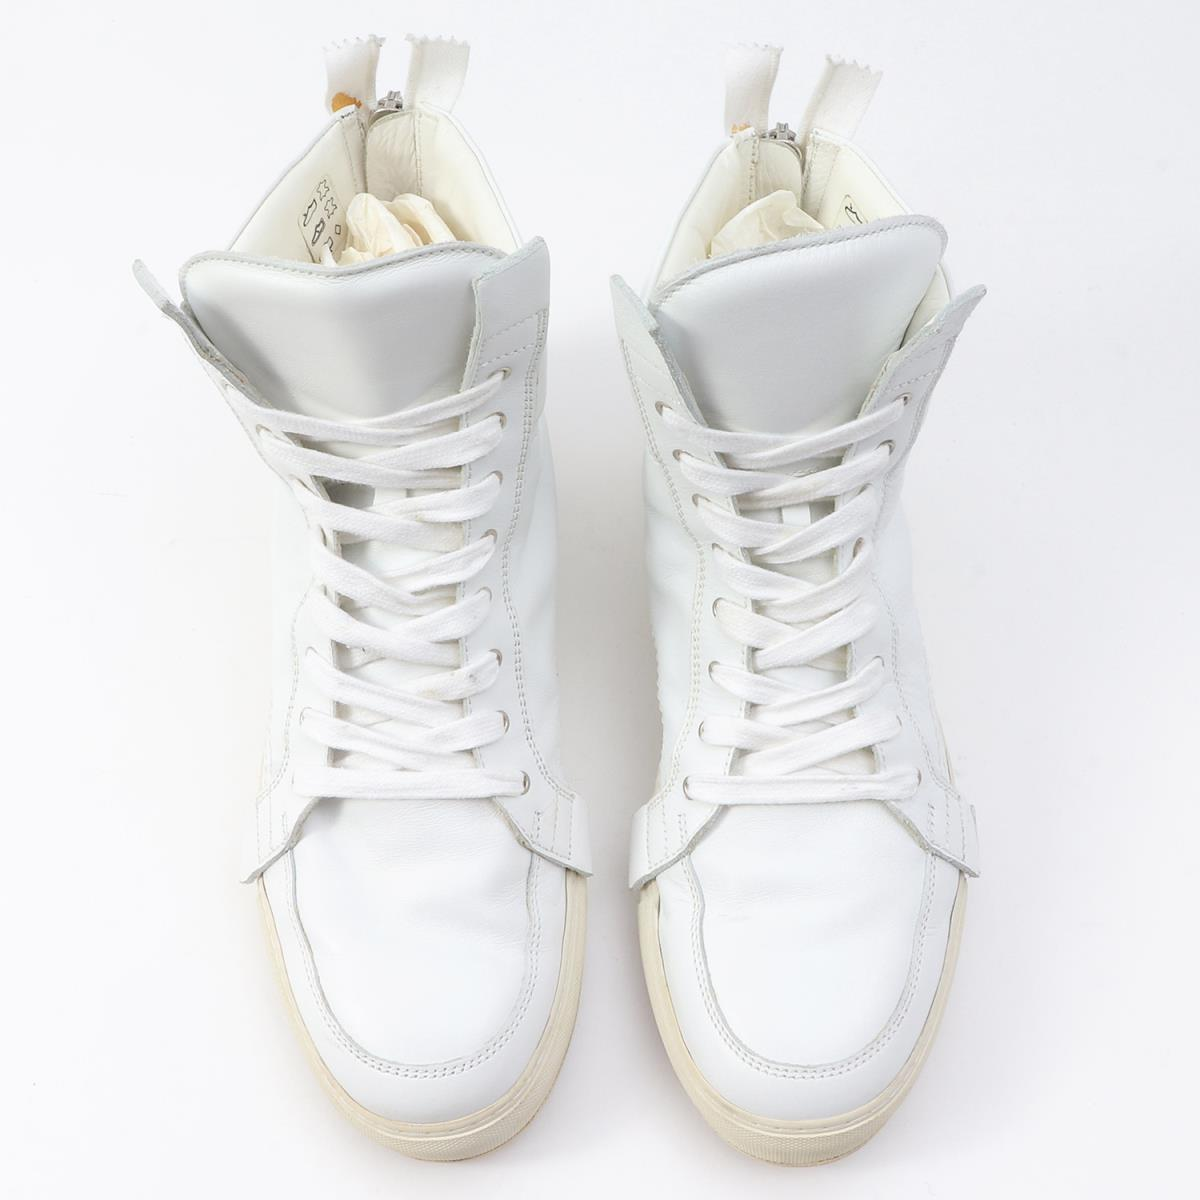 cd8167637a KRIS VAN ASSCHE (Chris station wagon Ashe) back zip leather higher  frequency elimination sneakers white 41